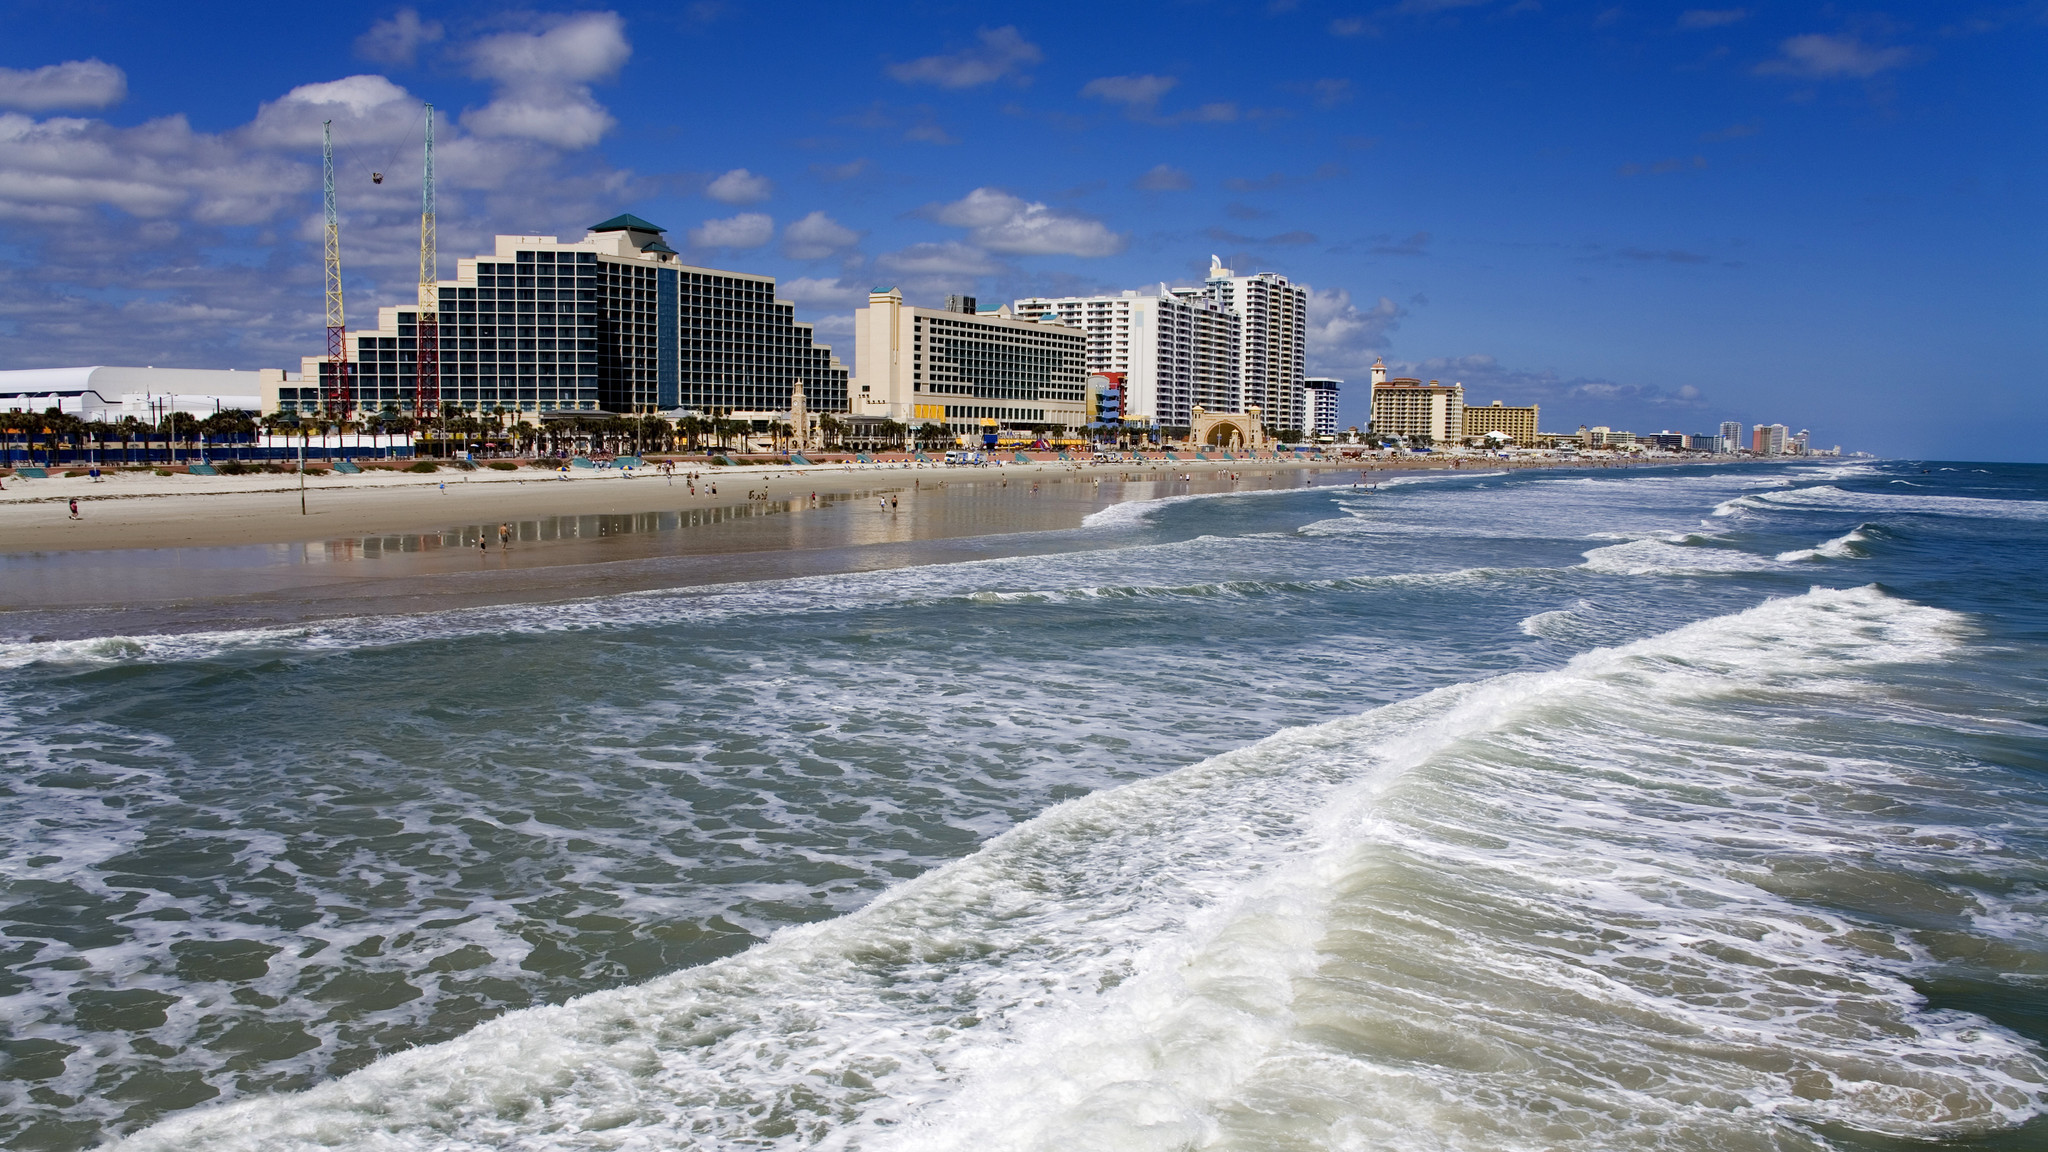 Florida for fall? LAX to Daytona for $251, all fees and taxes included